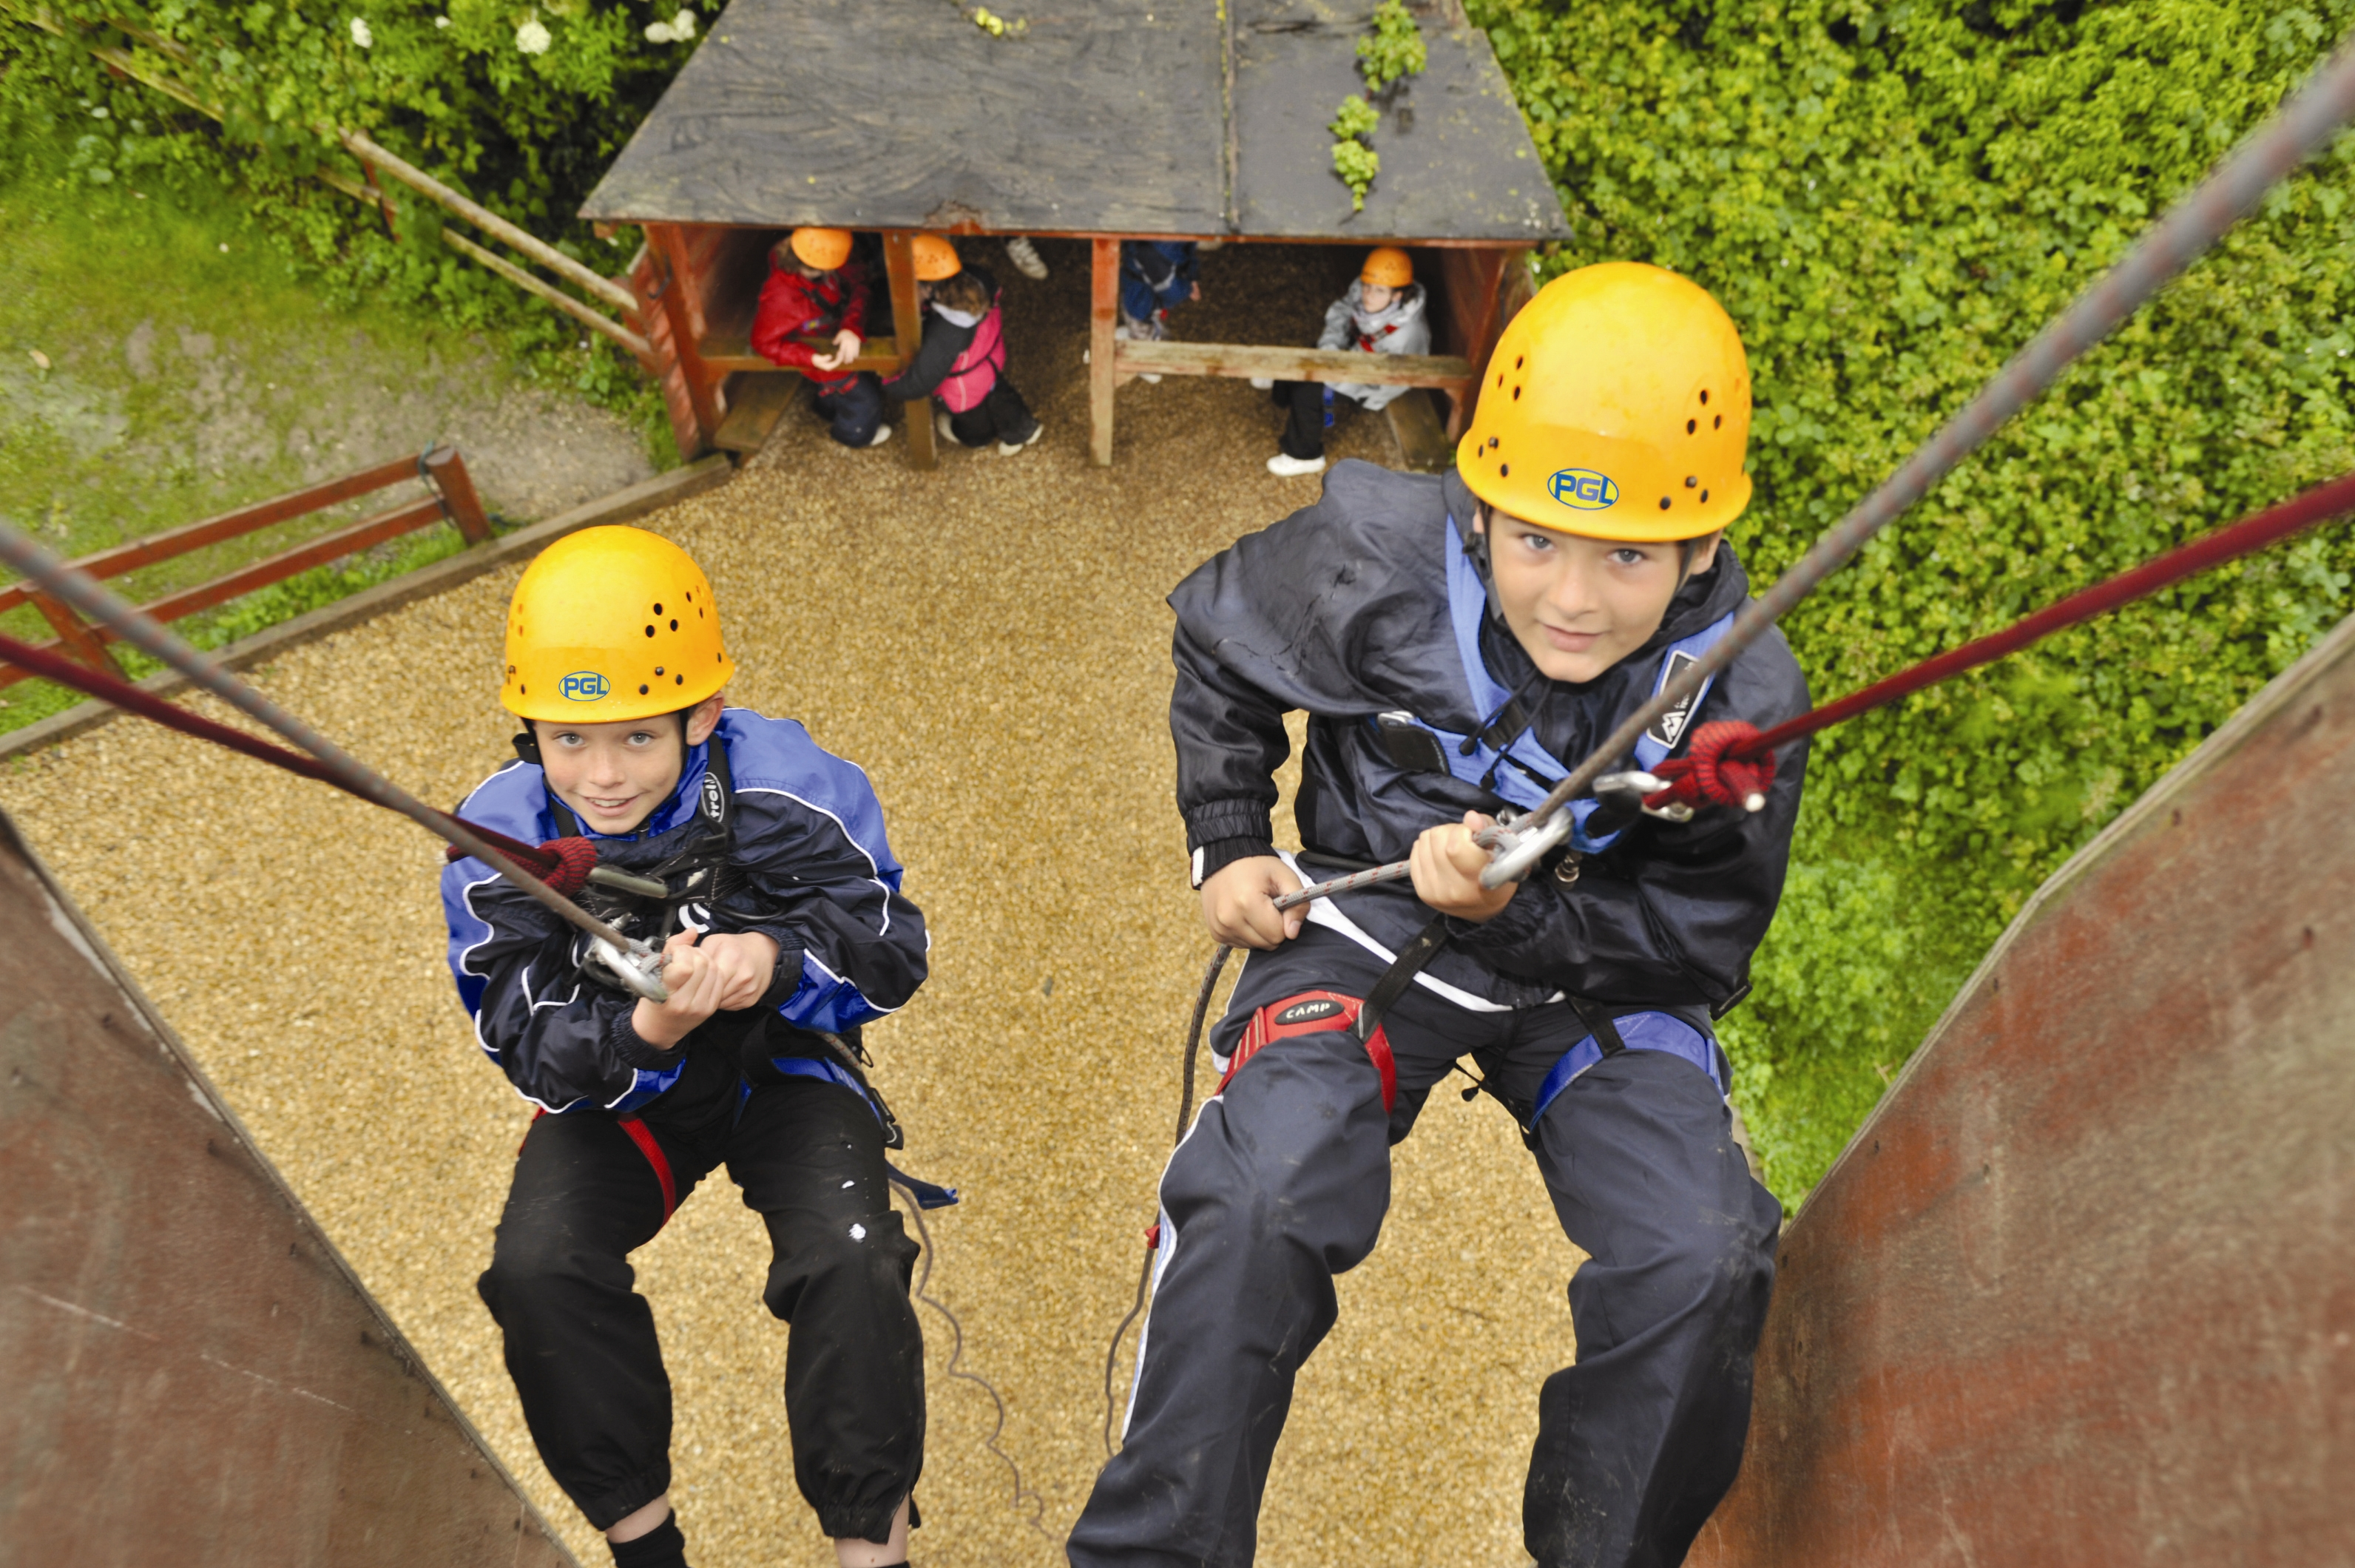 PGL abseiling